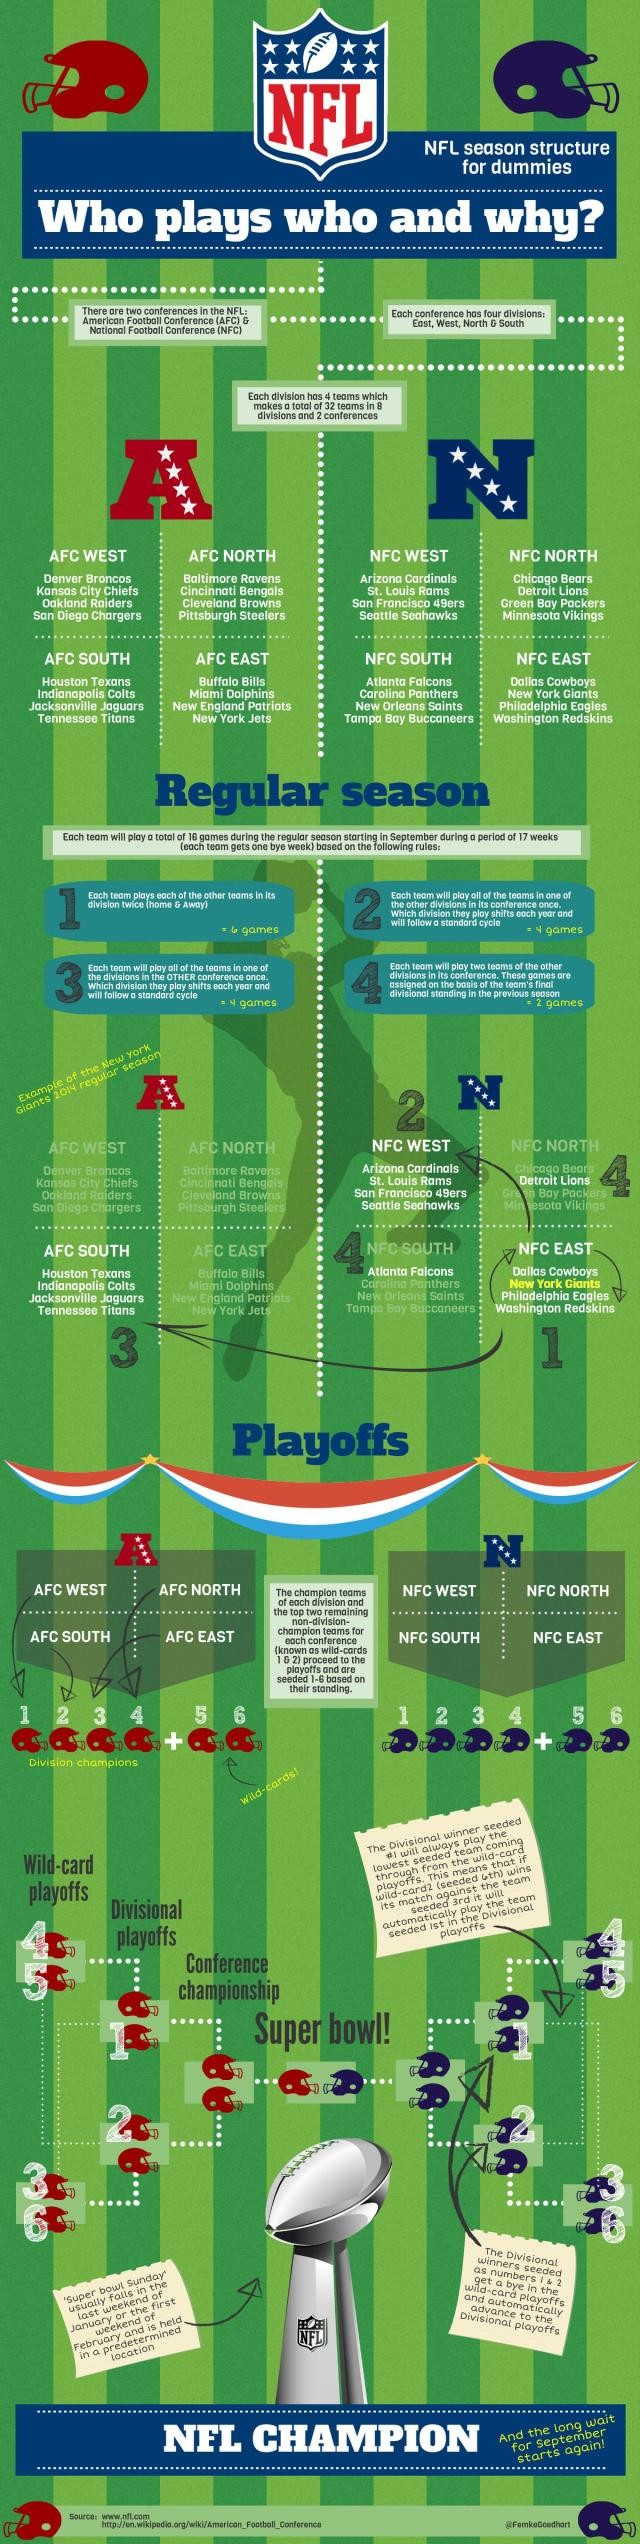 NFL Season structure